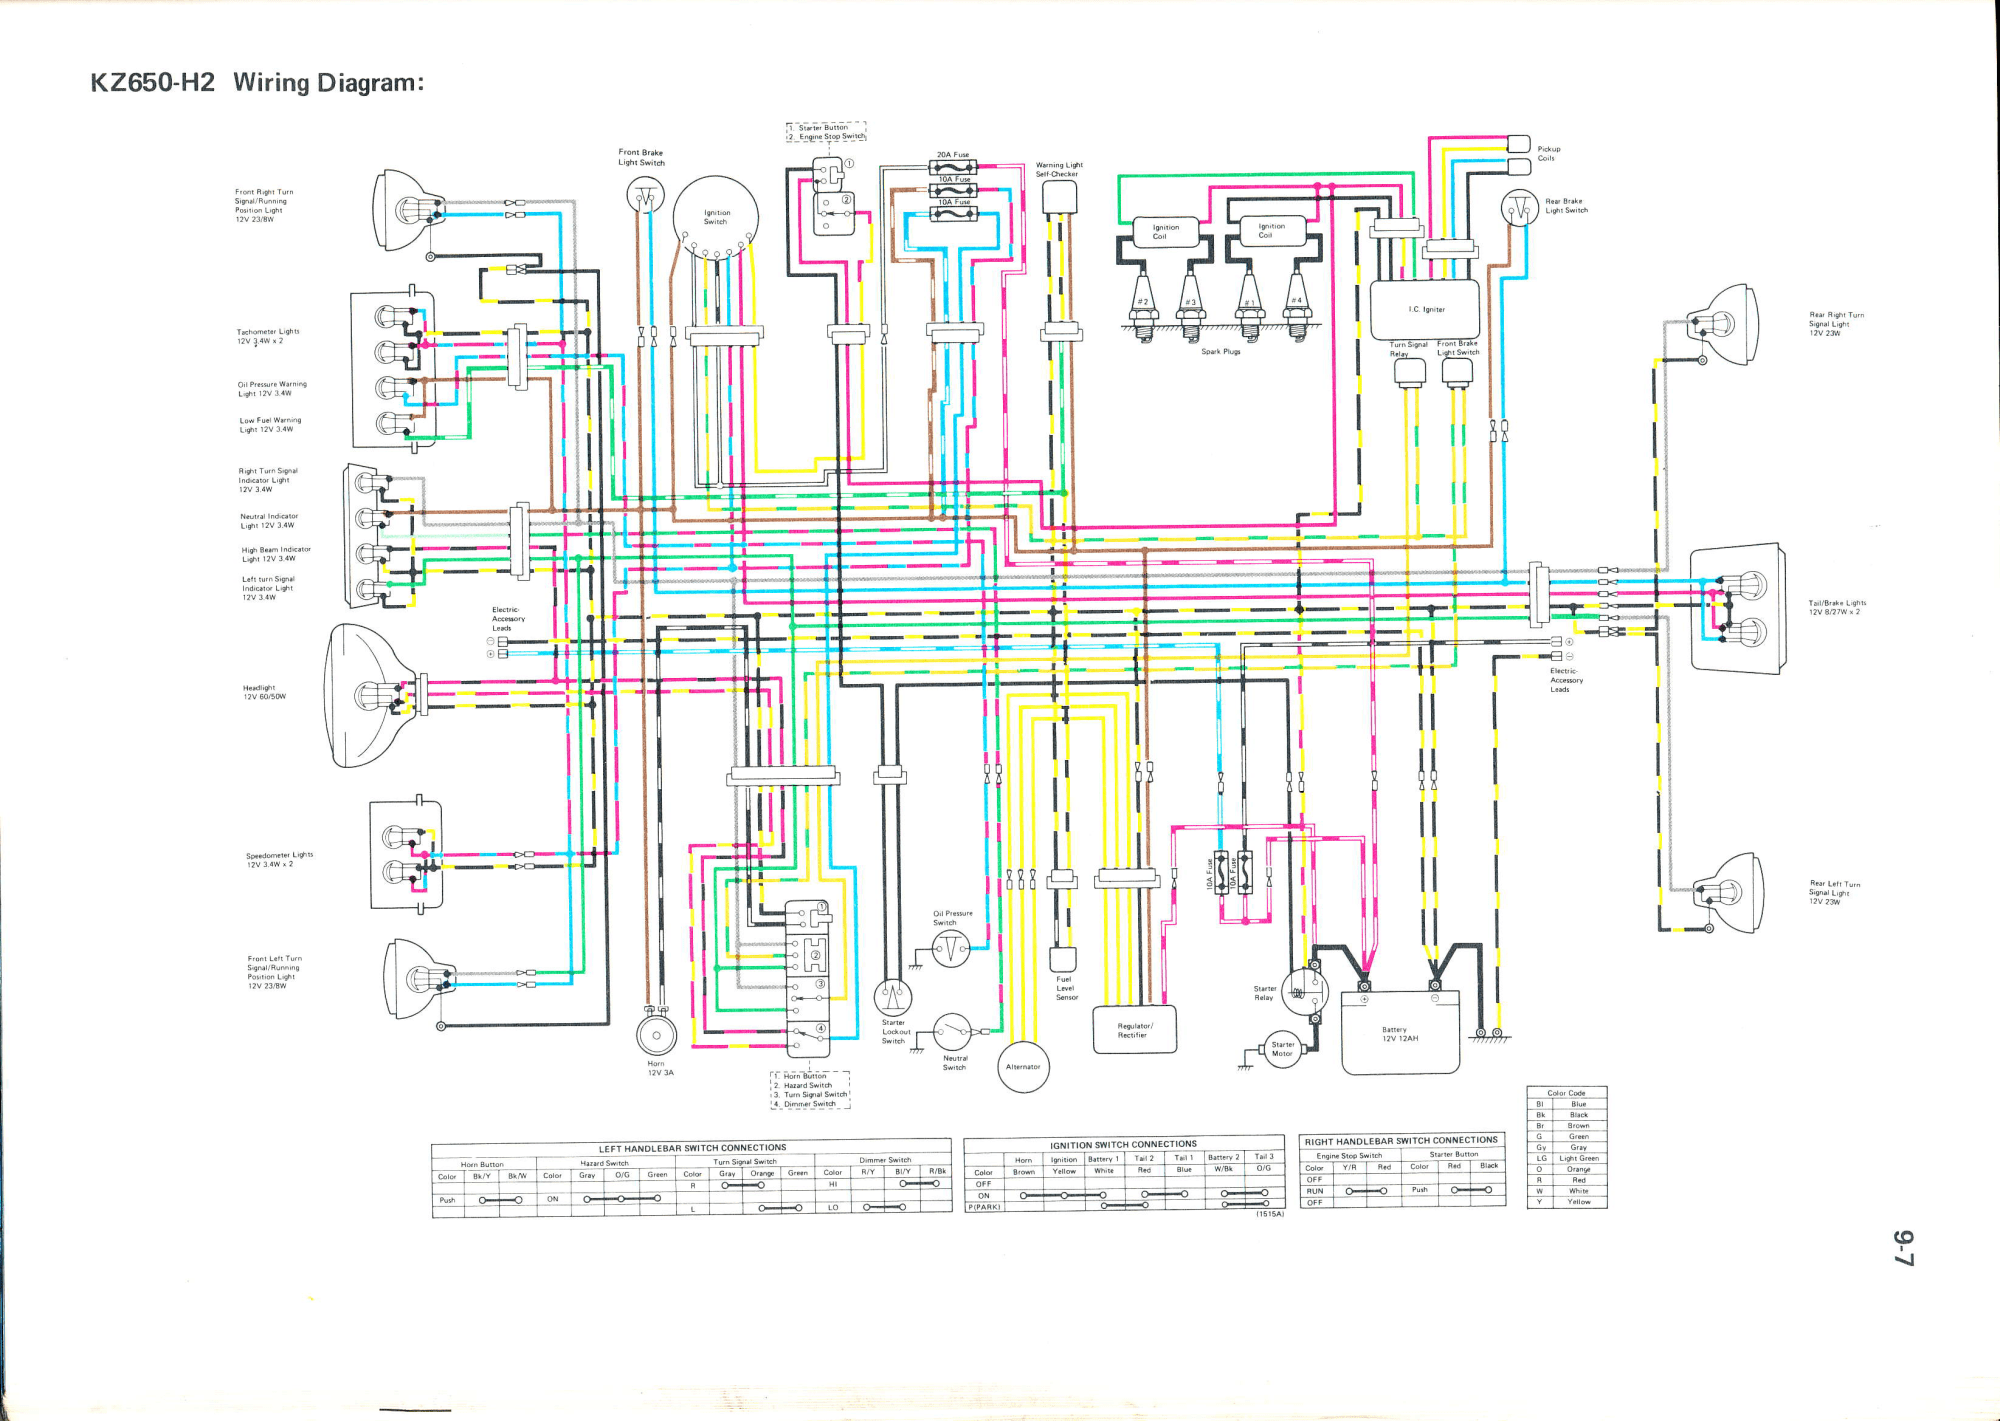 hight resolution of wiring diagrams 1978 kz650 wiring diagram 1982 kz650csr h2 kz650 f3